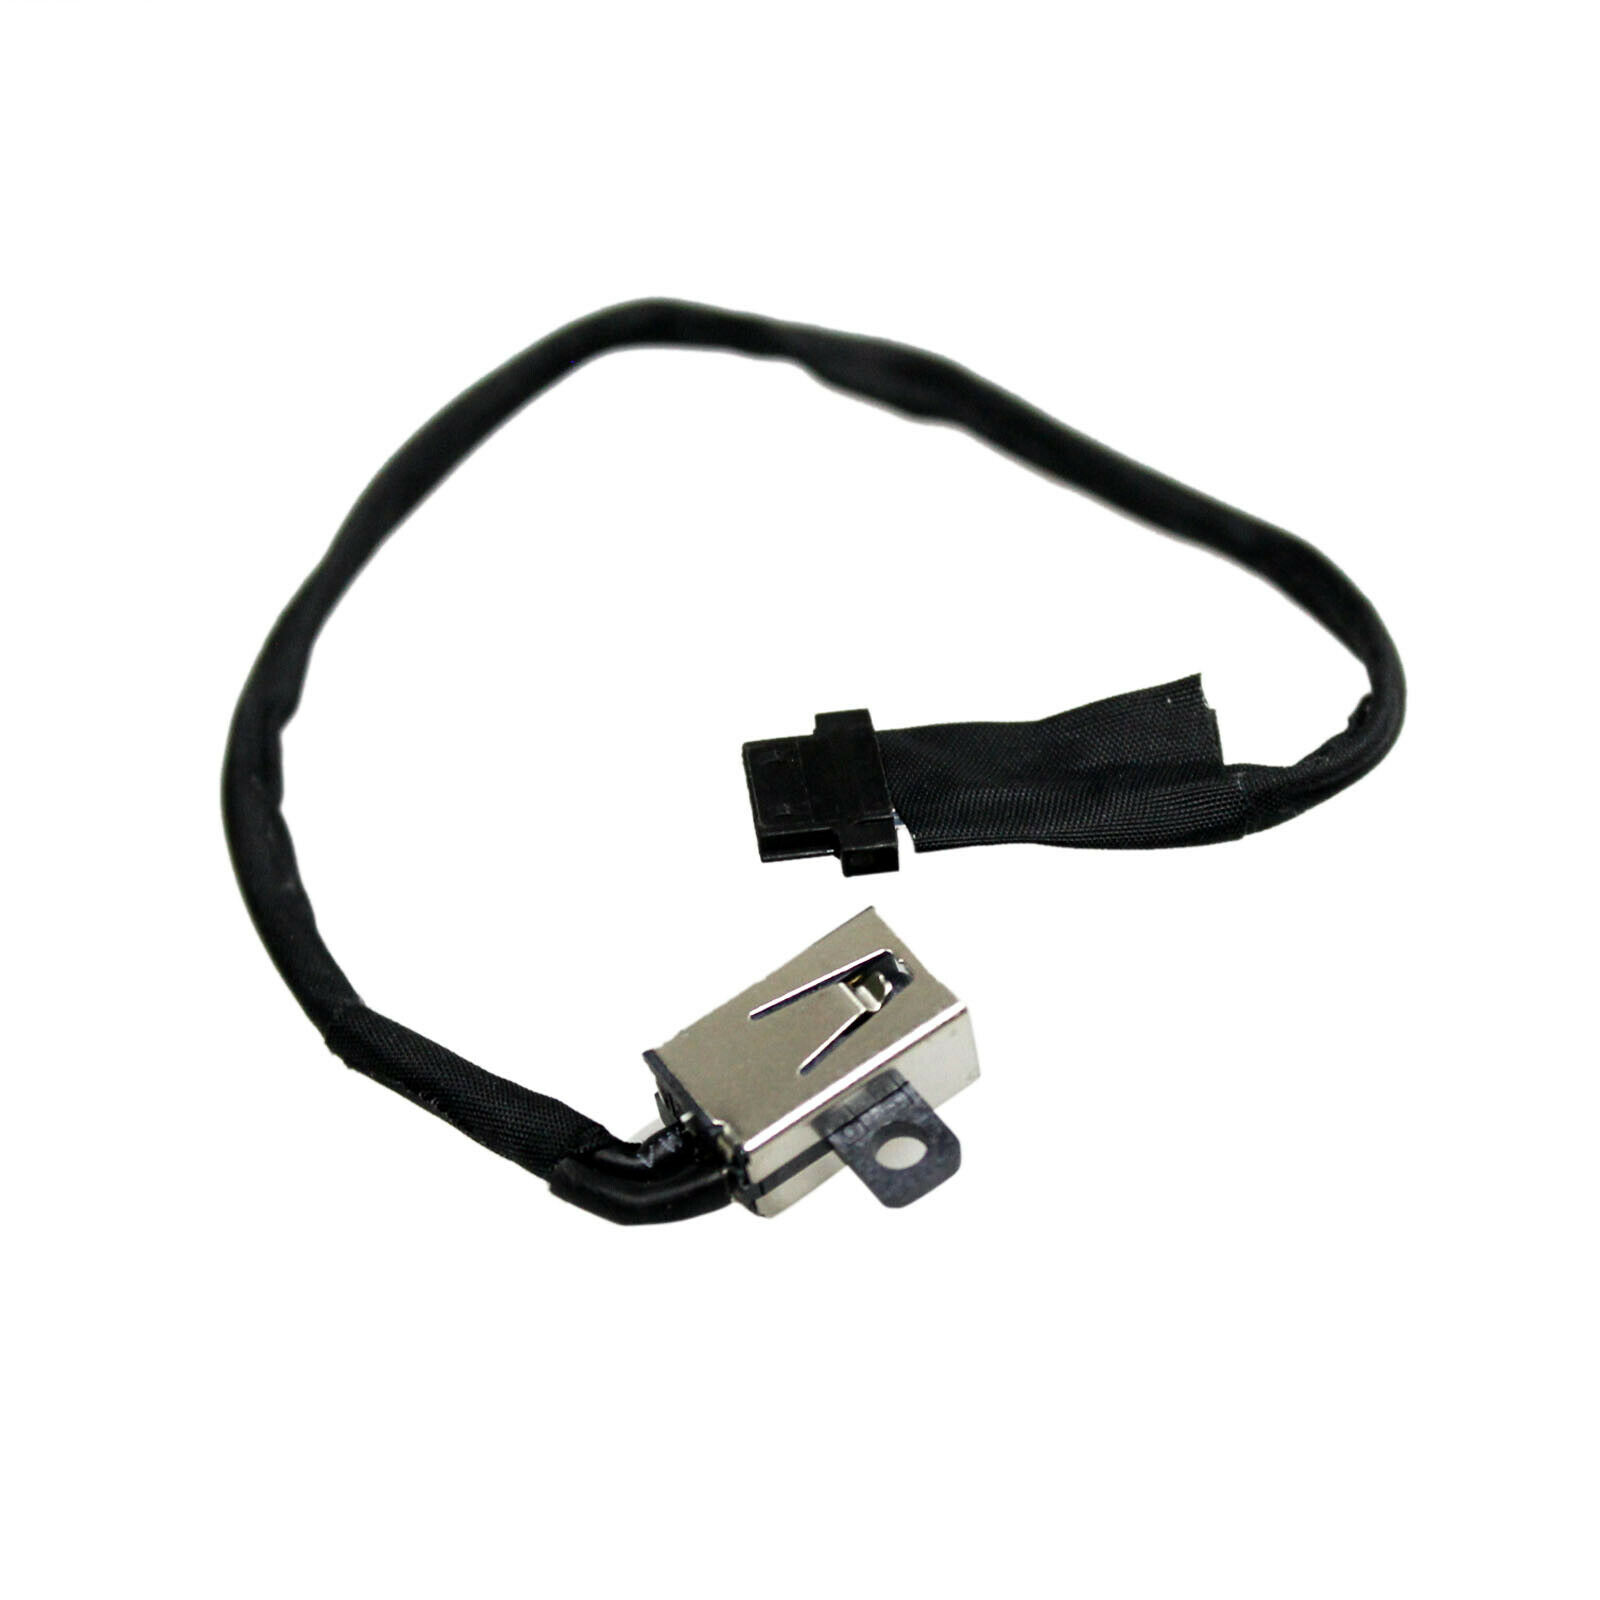 GinTai Laptop DC in Power Jack Harness Cable Socket Plug Port Replacement for HP Chromebook 15-ab190cy 15-ab191cy 15-ab192cy